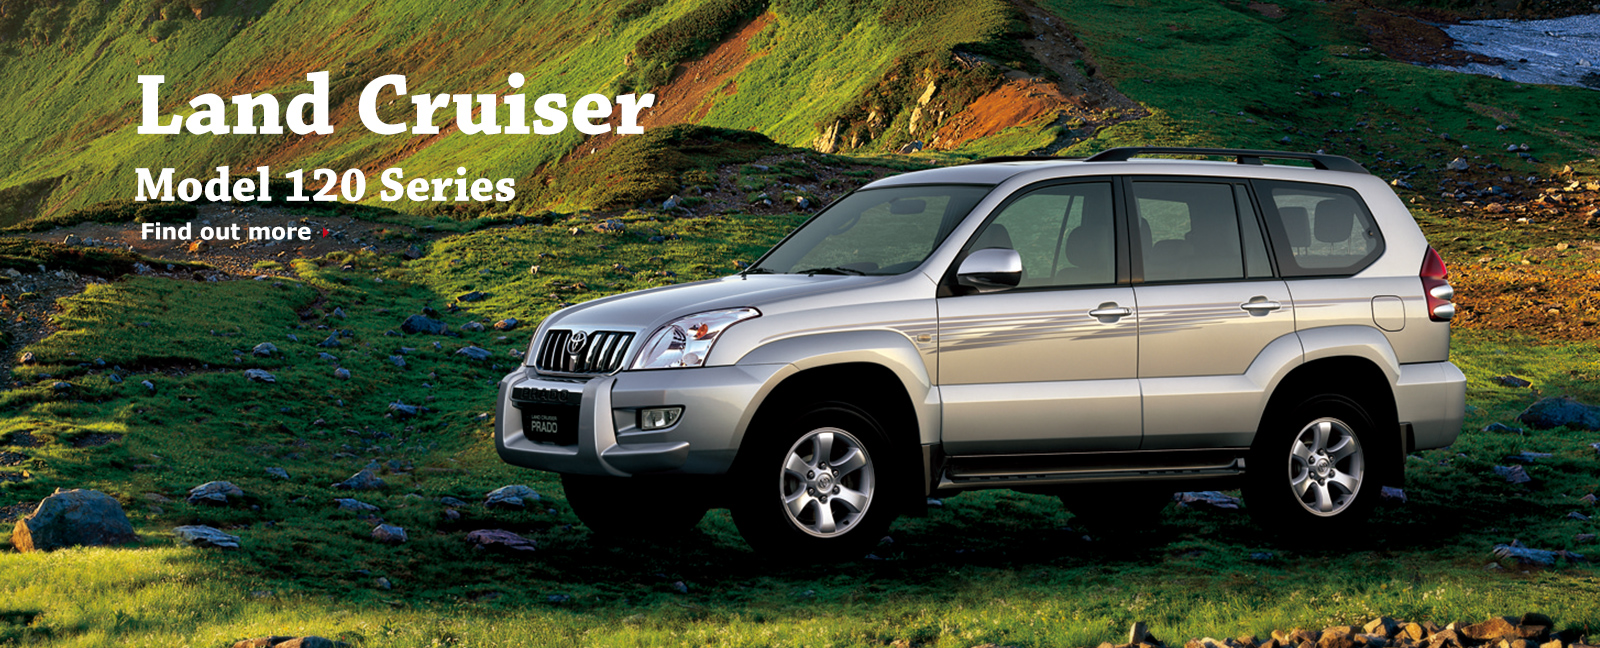 Land Cruiser Model 120 Series Find out more